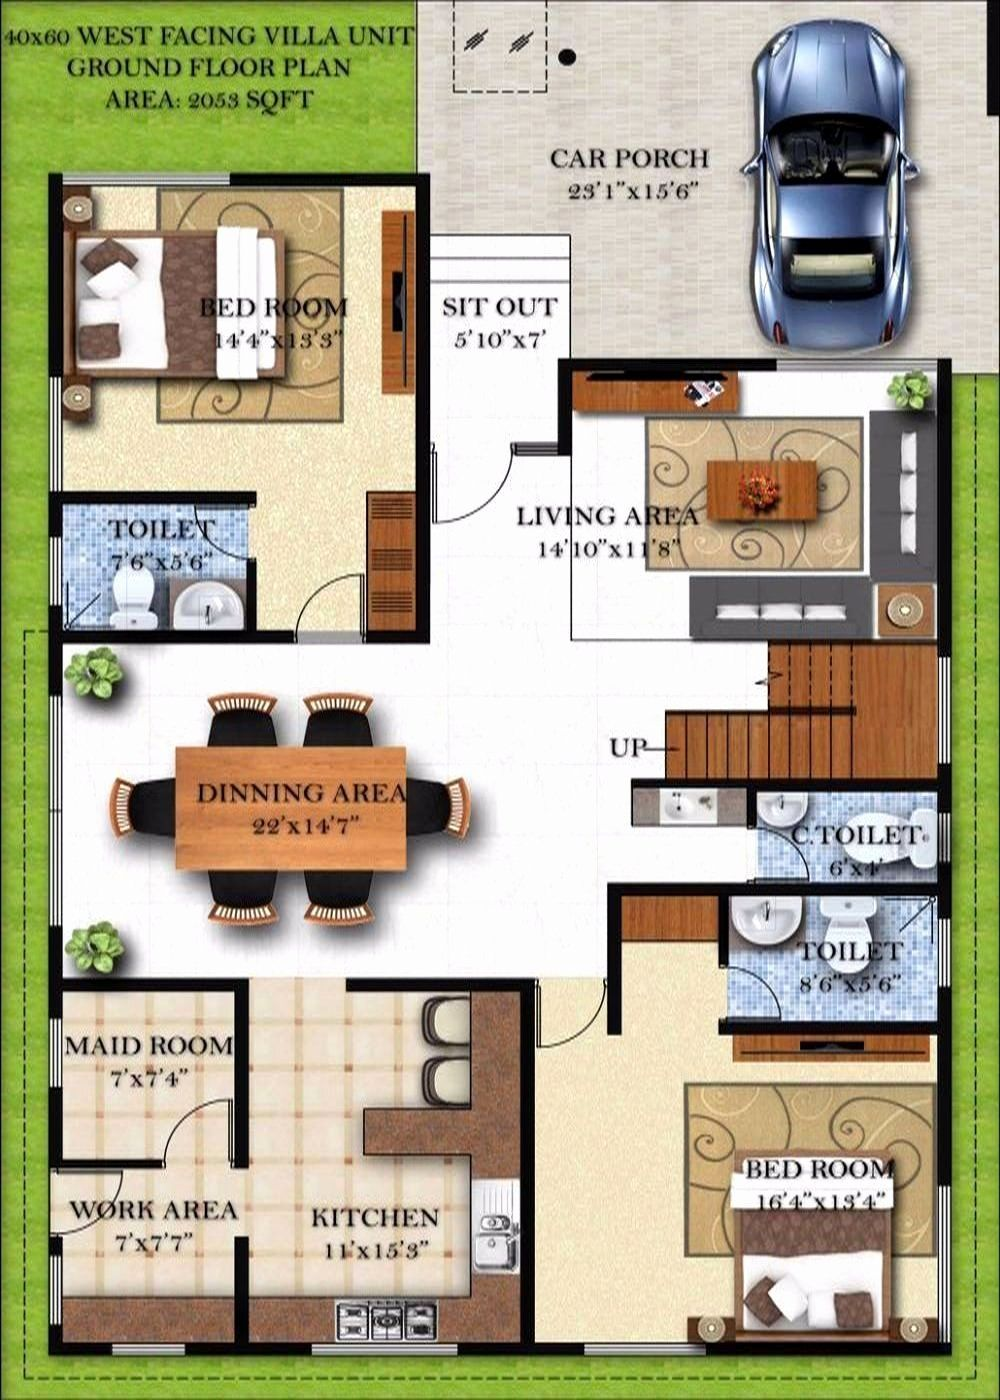 50 X 60 House Plans New 30 40 Duplex House Plans With Car Parking East Facing 60 In 2020 Duplex House Plans Small House Plans New House Plans